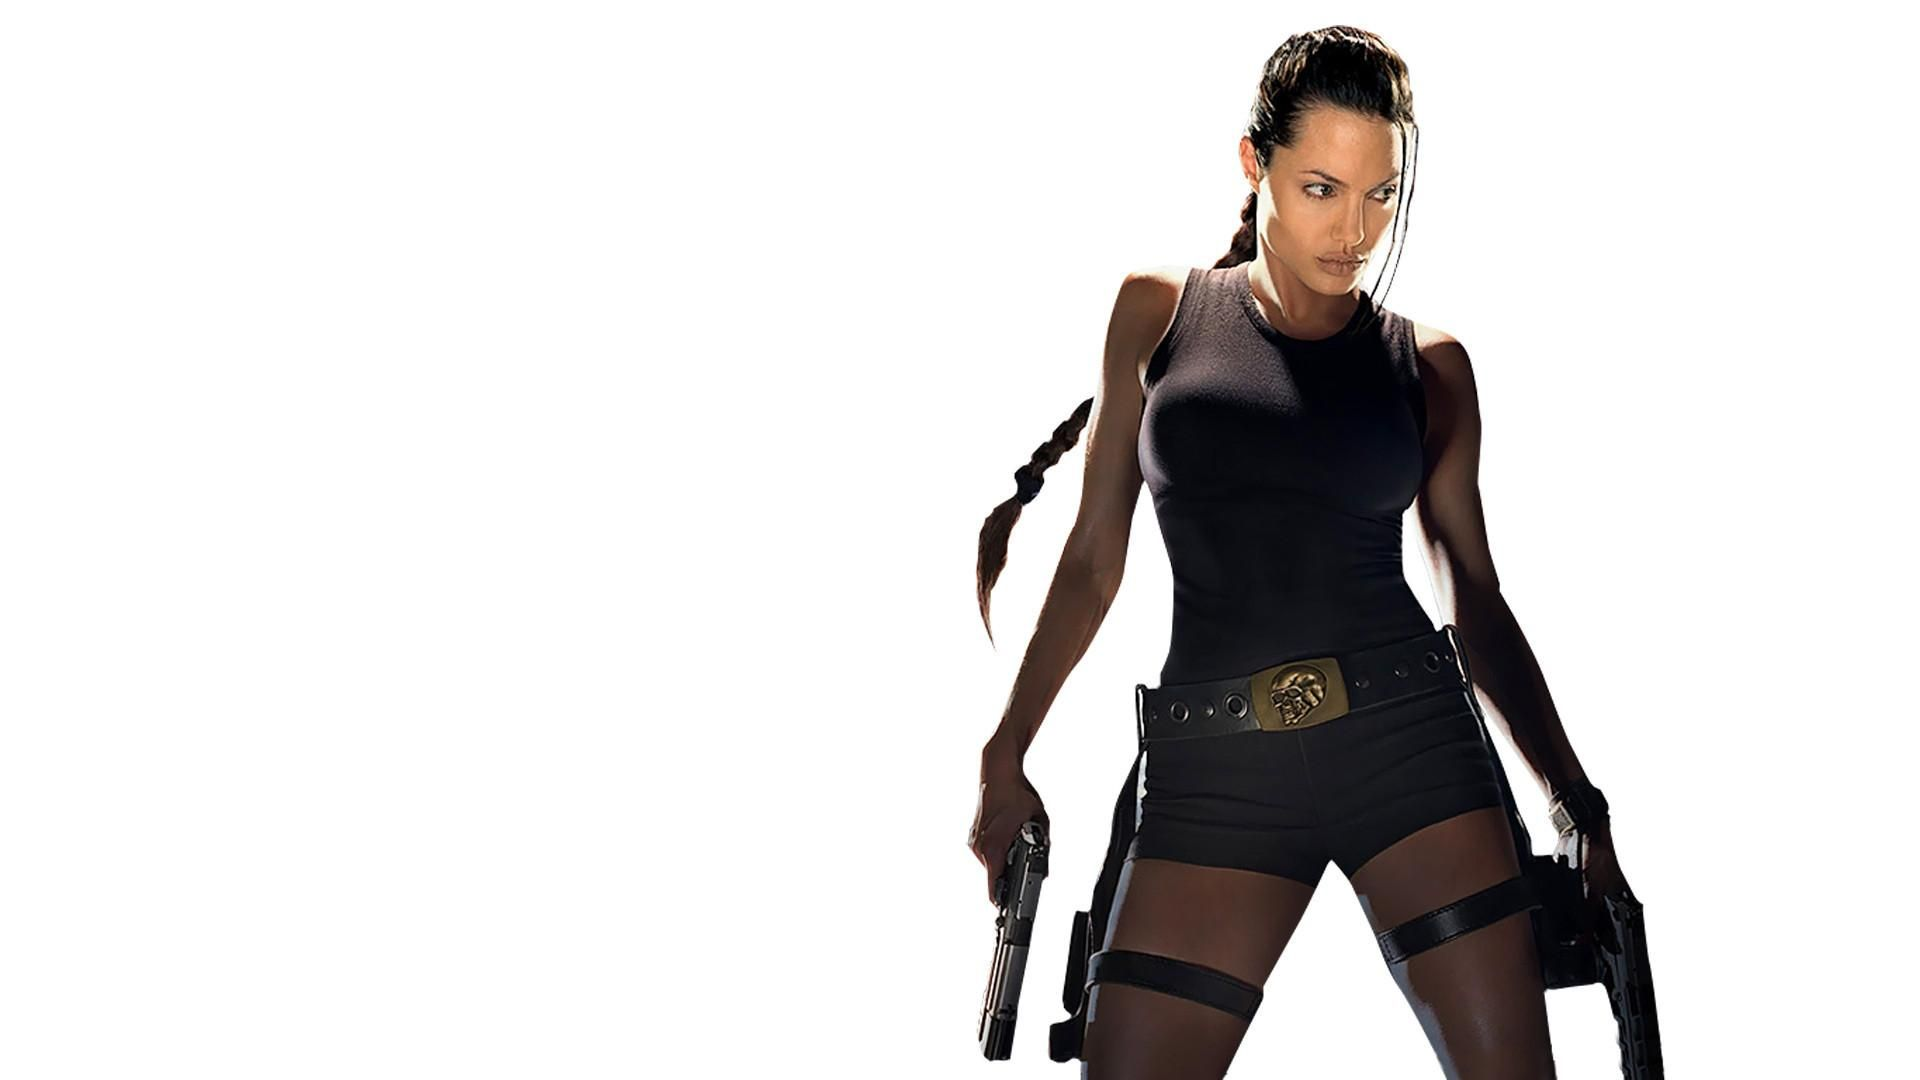 Lara Croft Tomb Raider 2001 Lara Croft Tomb Raider 2001